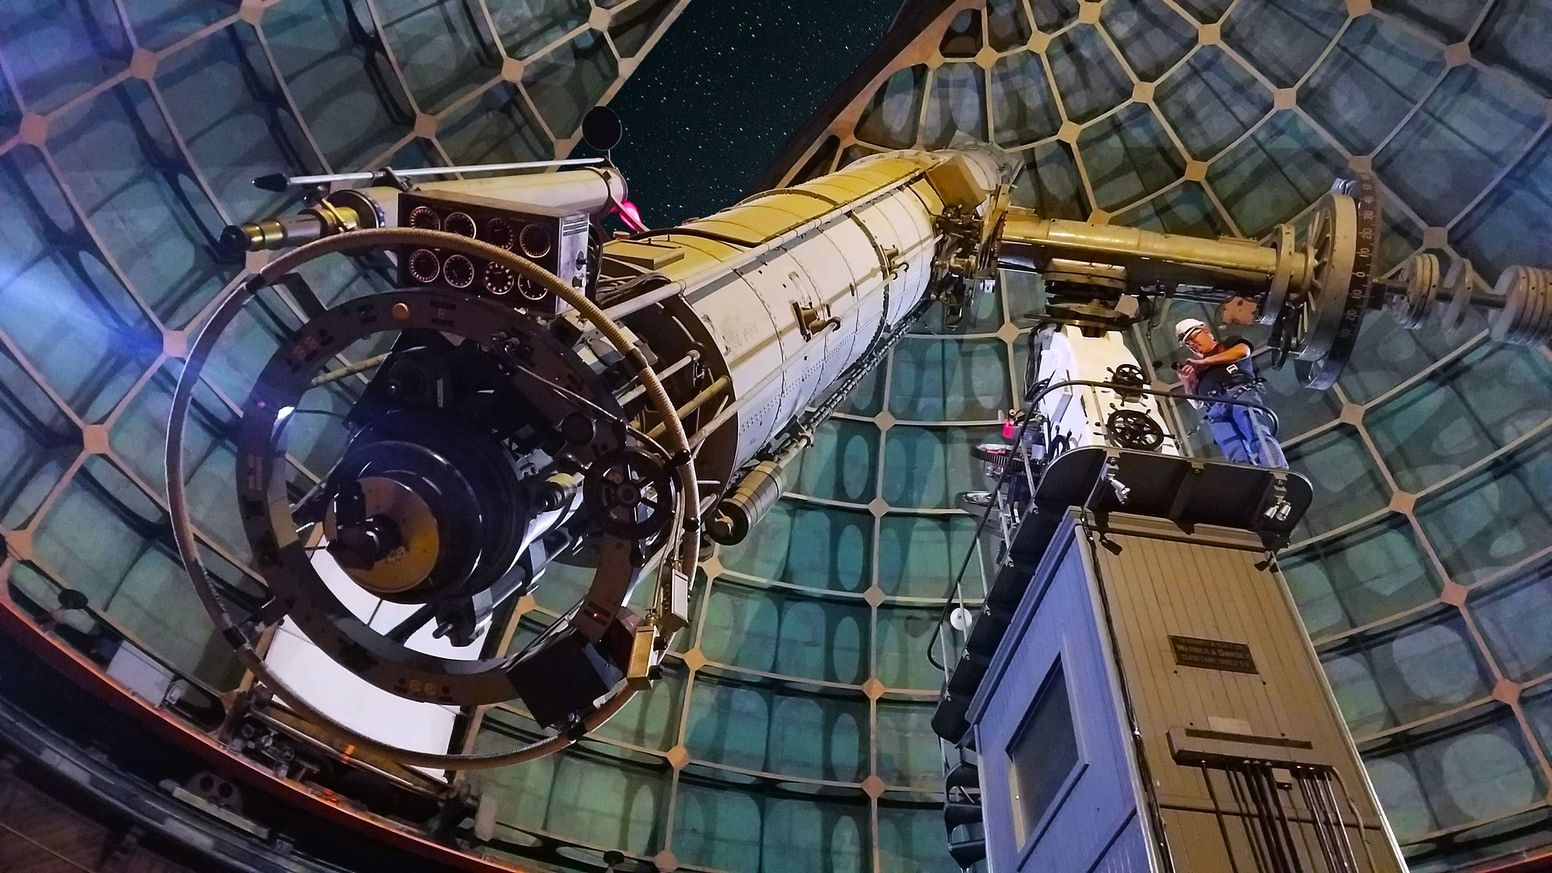 Two astrophotographers use the historic 129 year old Great Lick Refractor to capture the cosmos using modern day techniques